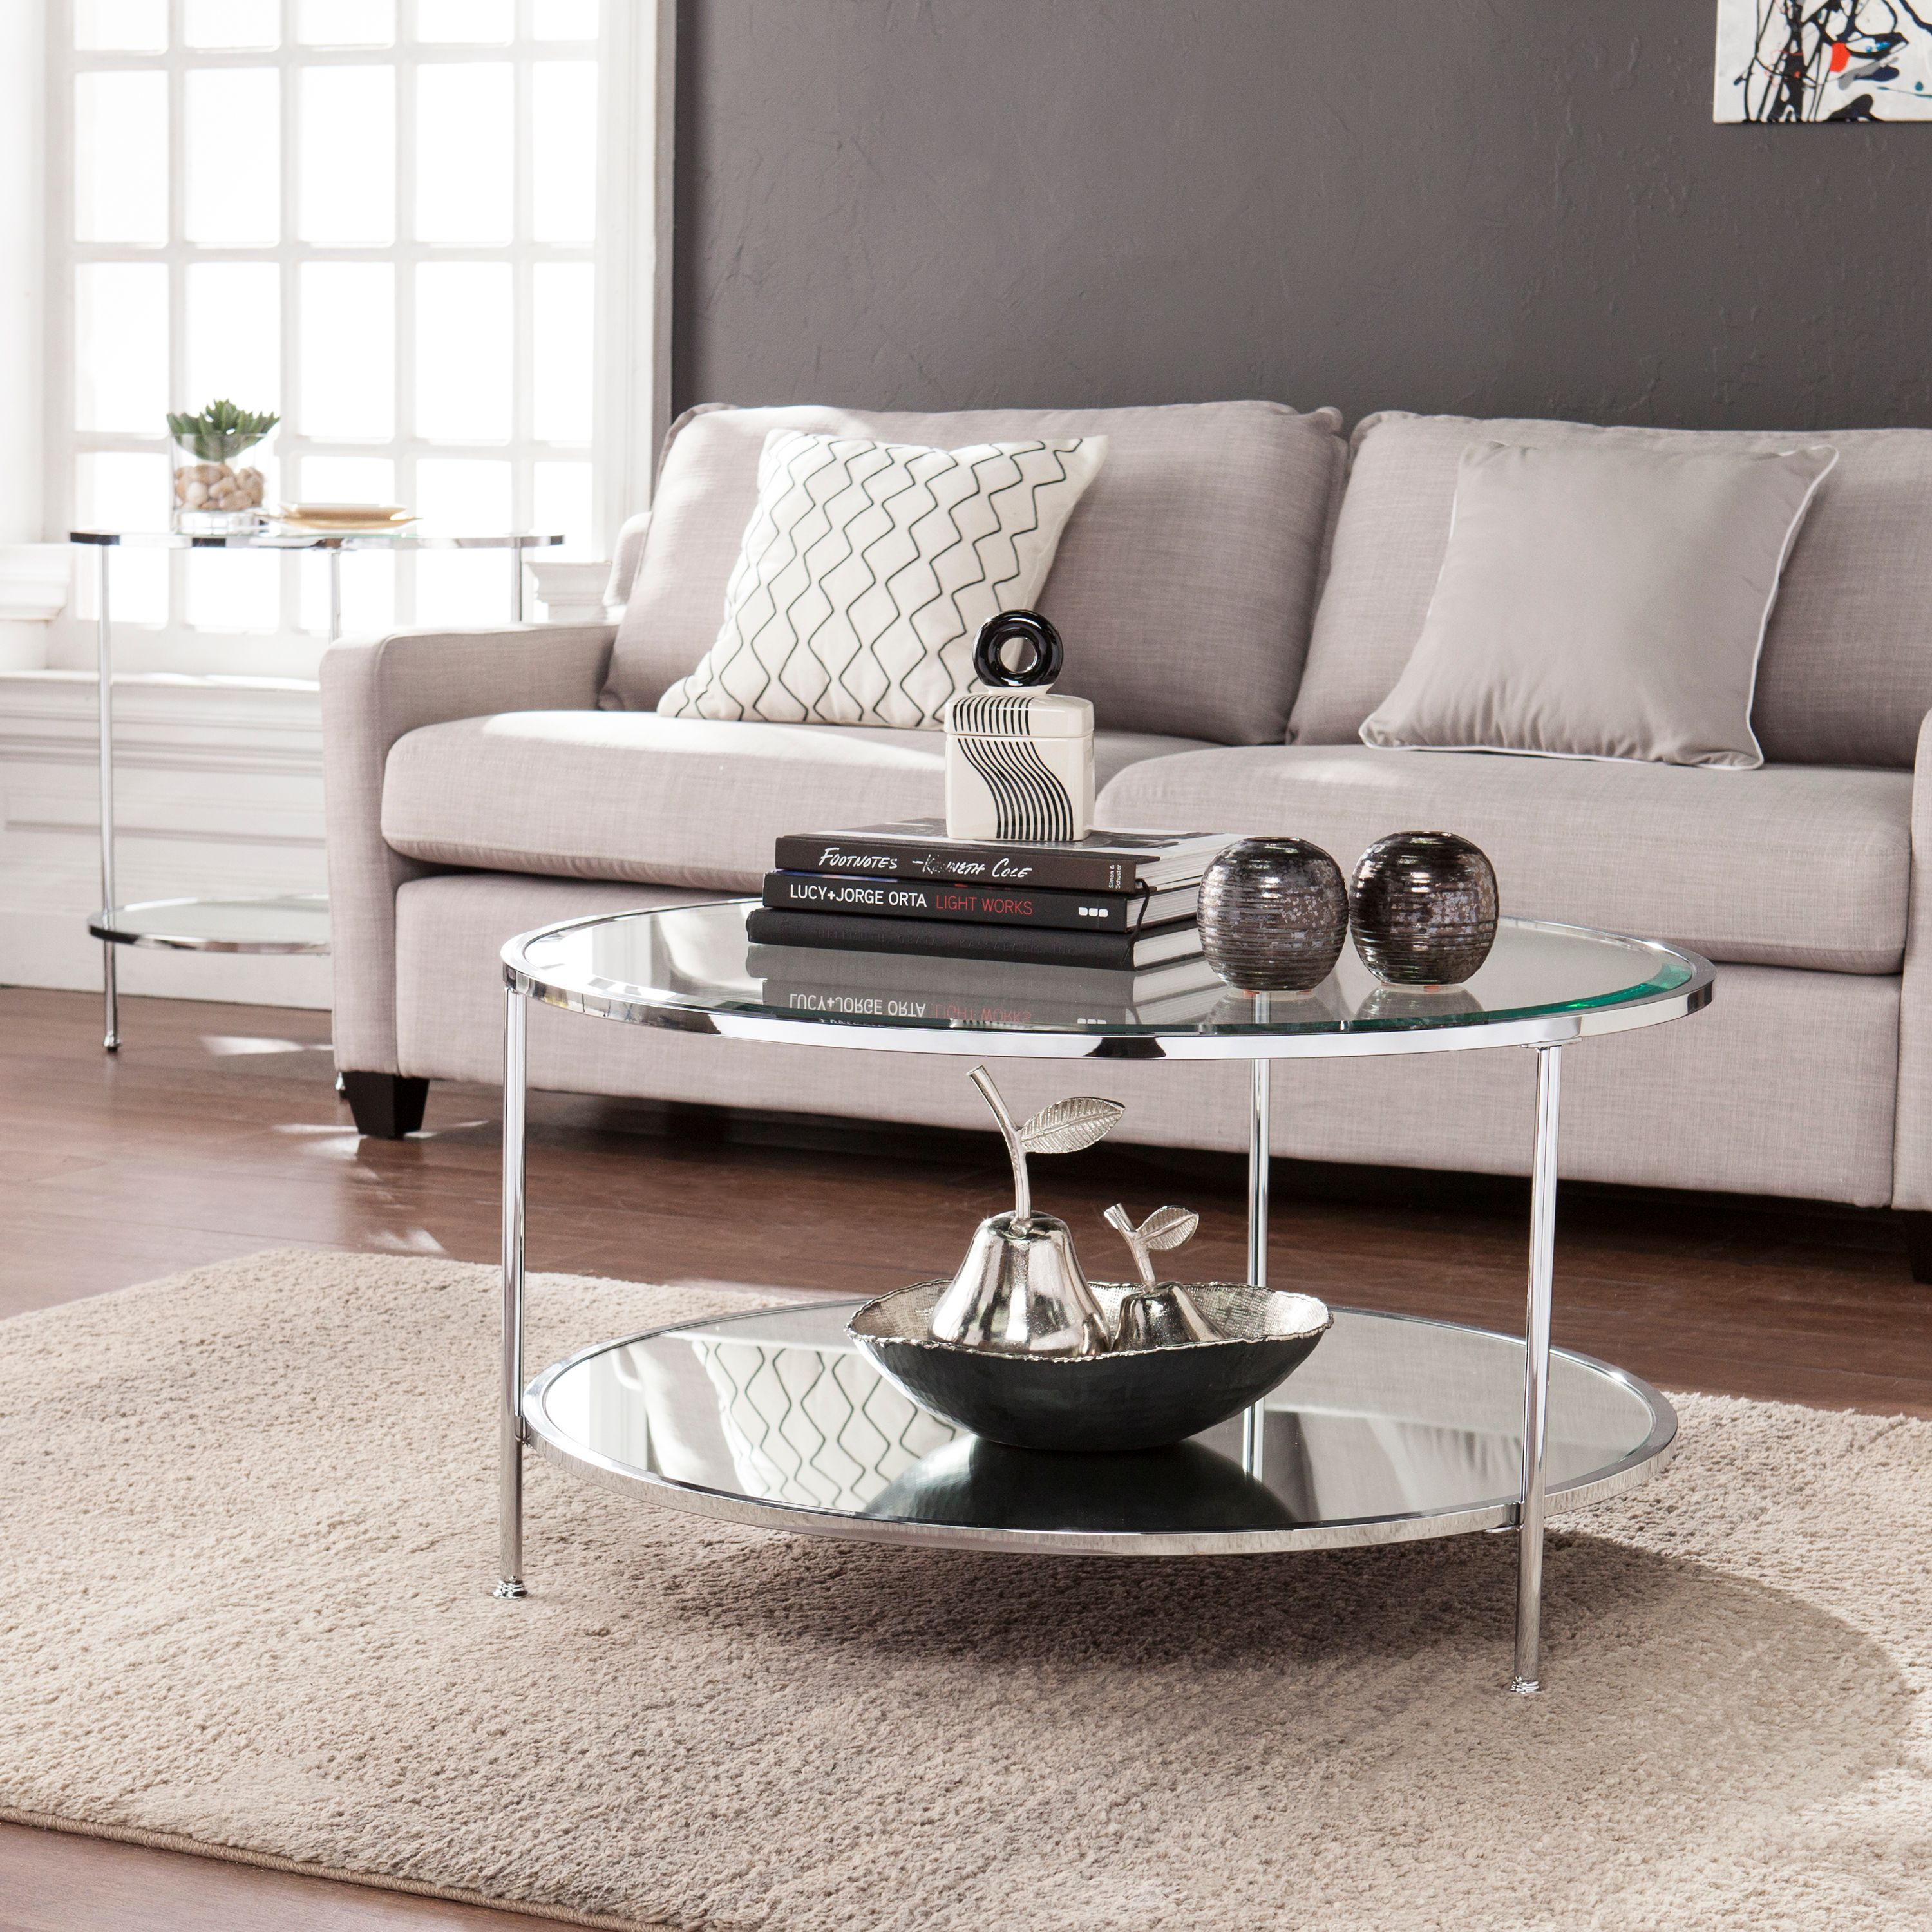 Southern Enterprises Rambix Cocktail Table, Glam Style, Chrome